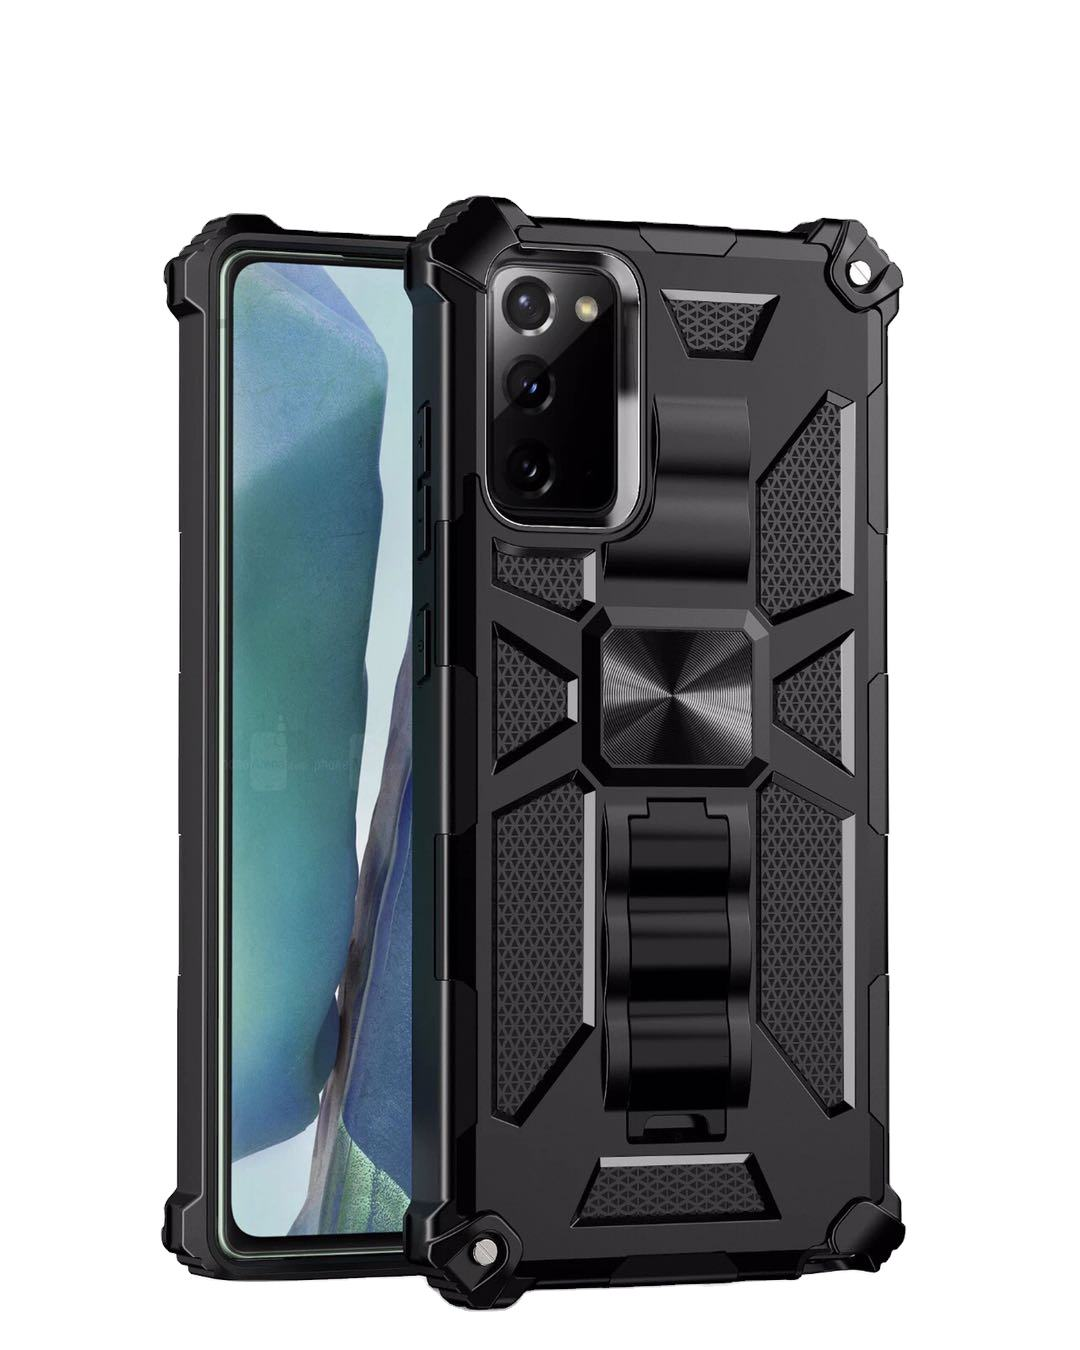 2020 Ultra Shockproof Armor Car Magnetic Stand Phone Case for Samsung Galaxy S10 20 plus ultra Note 10 A10 20 30 40 50 51 60 70